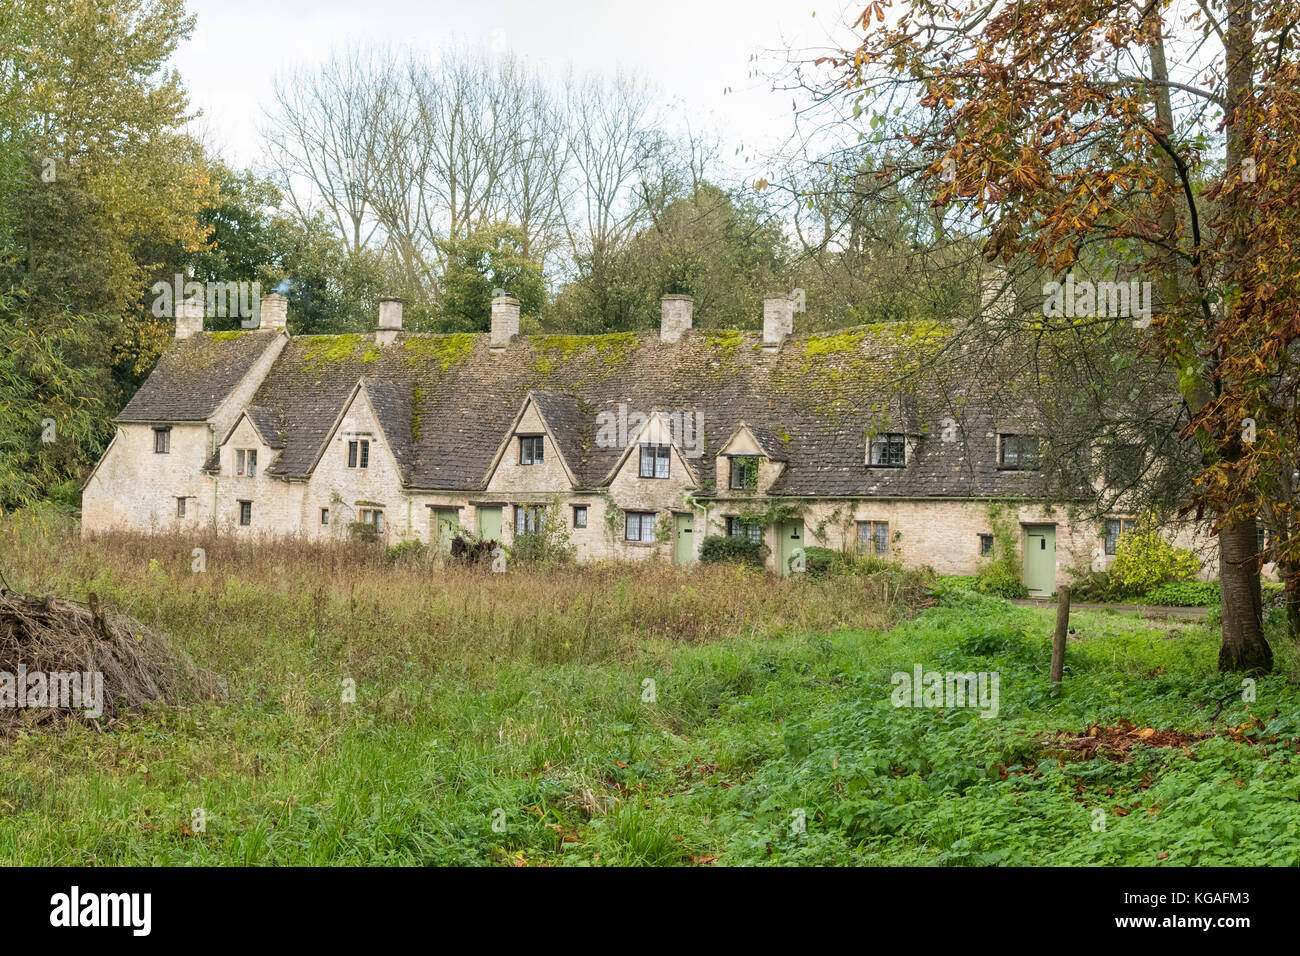 Arlington Row Bibury - row of Cotswold cottages - England, UK - Stock Image